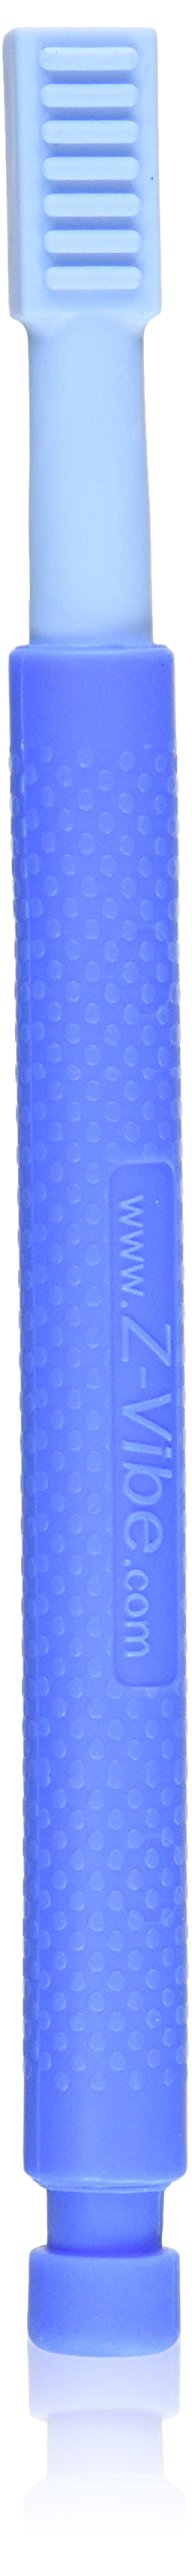 ARK's Z-Vibe Oral Stimulator for Speech & Feeding (Royal Blue) by ARK Therapeutic